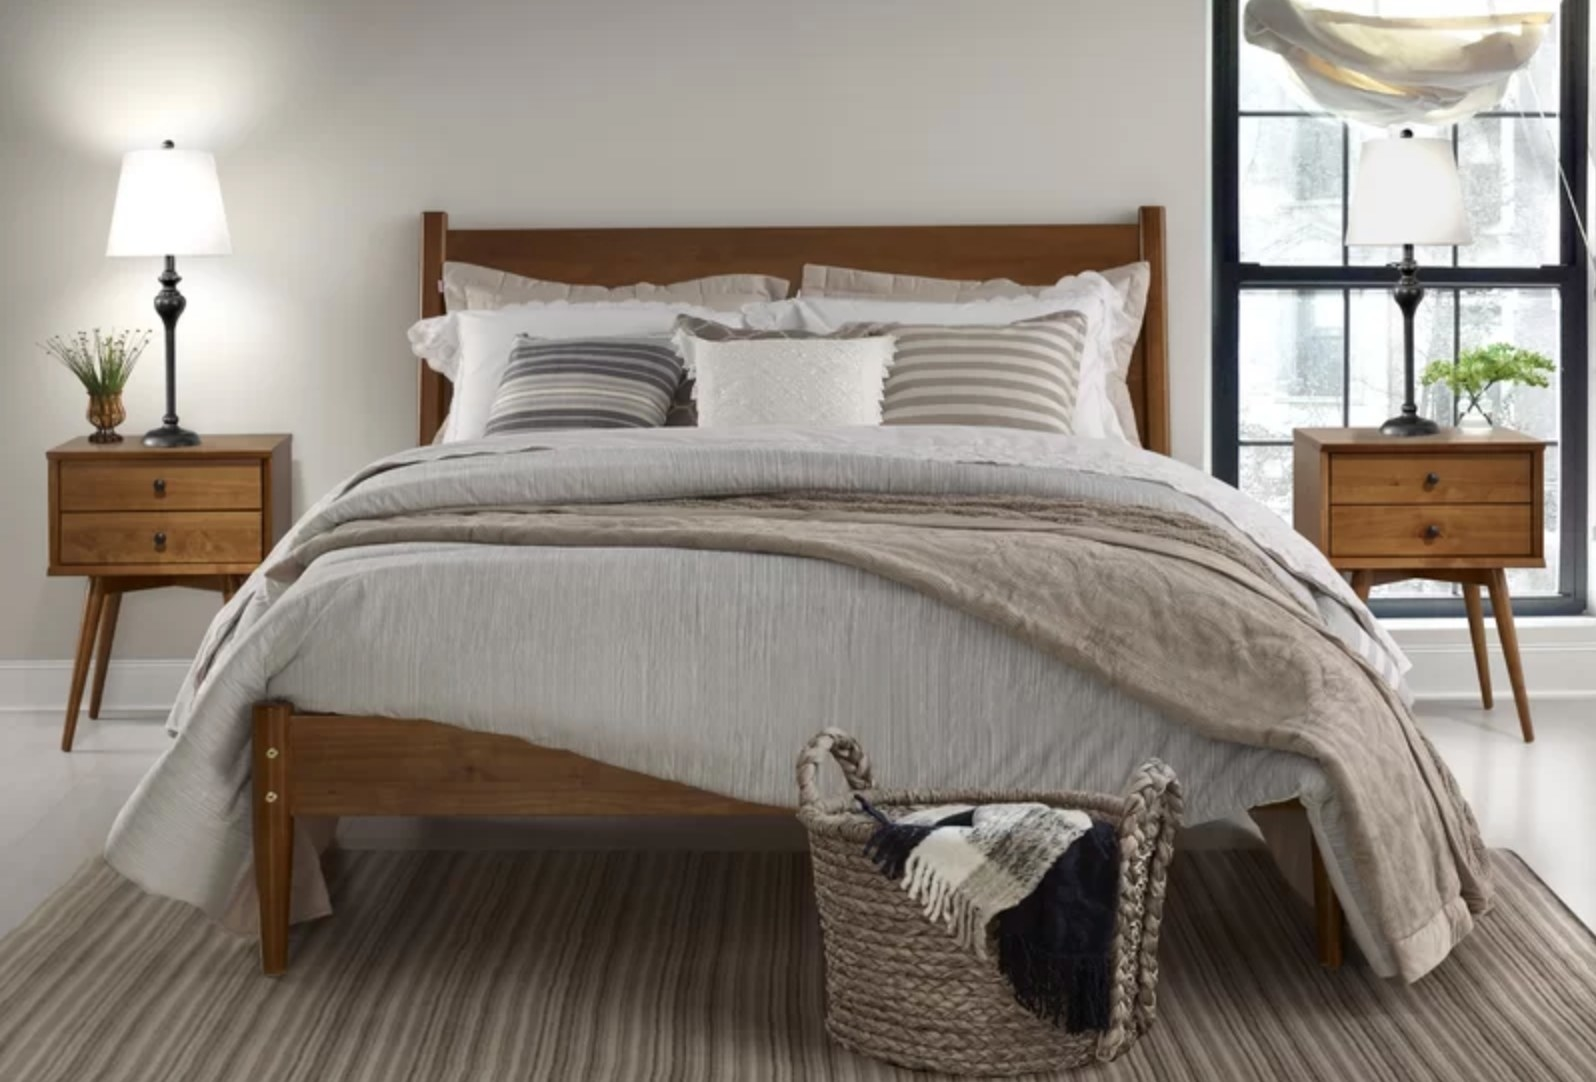 The midcentury platform bed with a solid light wood headboard